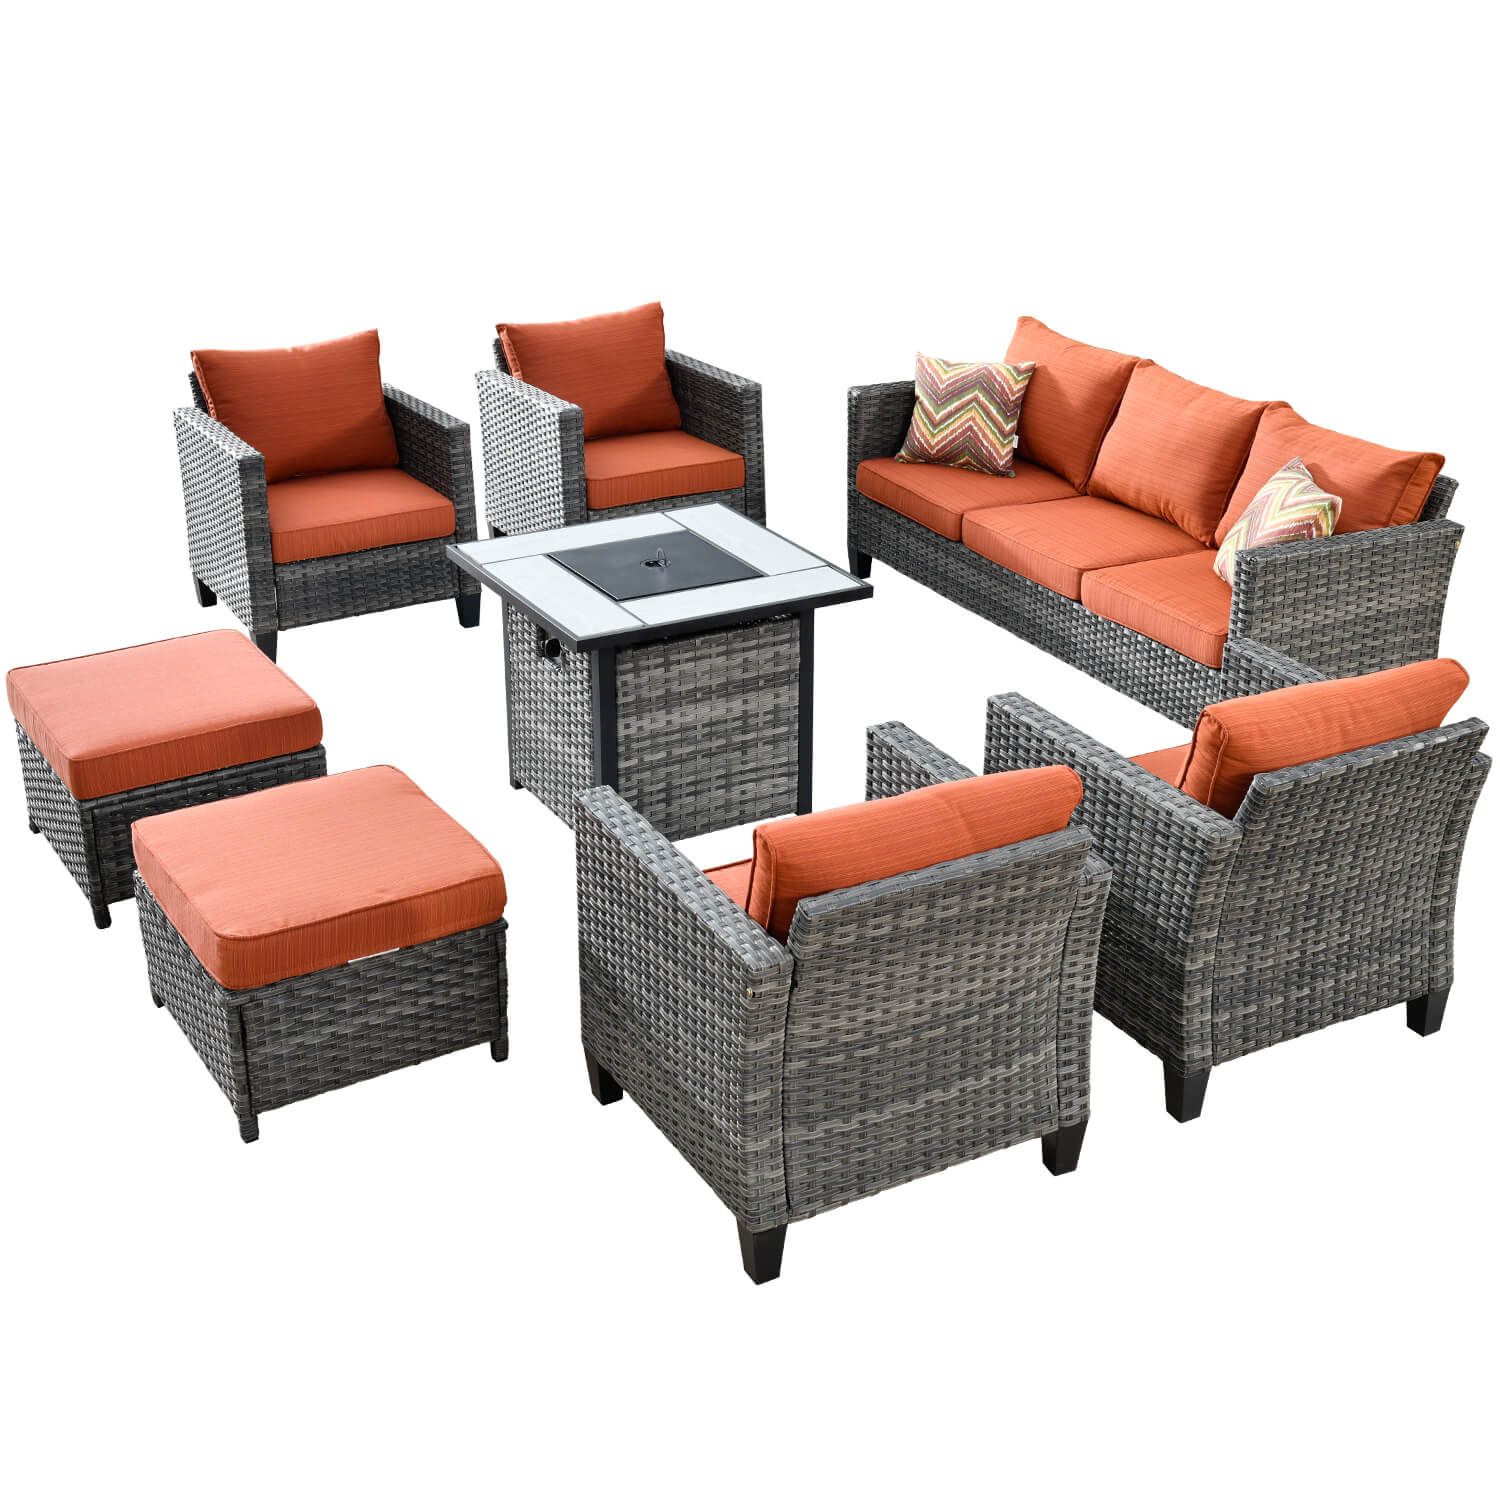 ovios patio furniture set backyard sofa outdoor furniture 6 pcs sets pe rattan wicker sectional with 2 pillows and coffee table no assembly